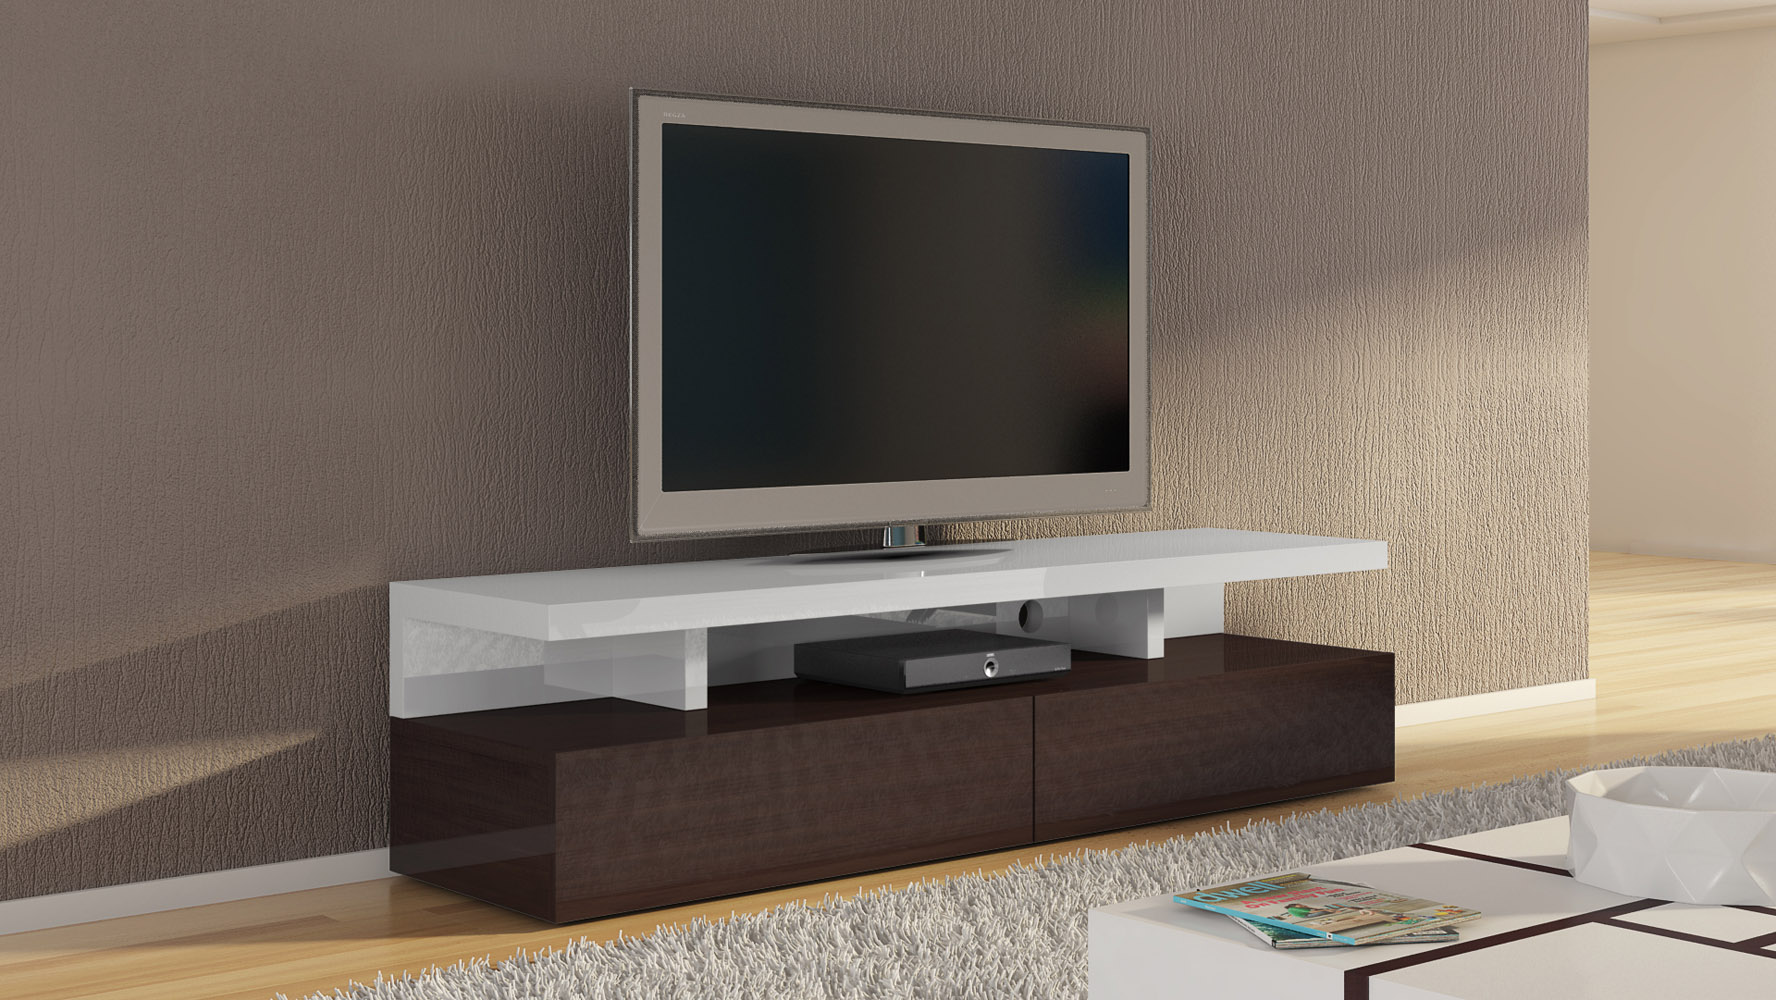 Mcintosh 71 Inch Tv Stand In White High Gloss And Ebony Accents